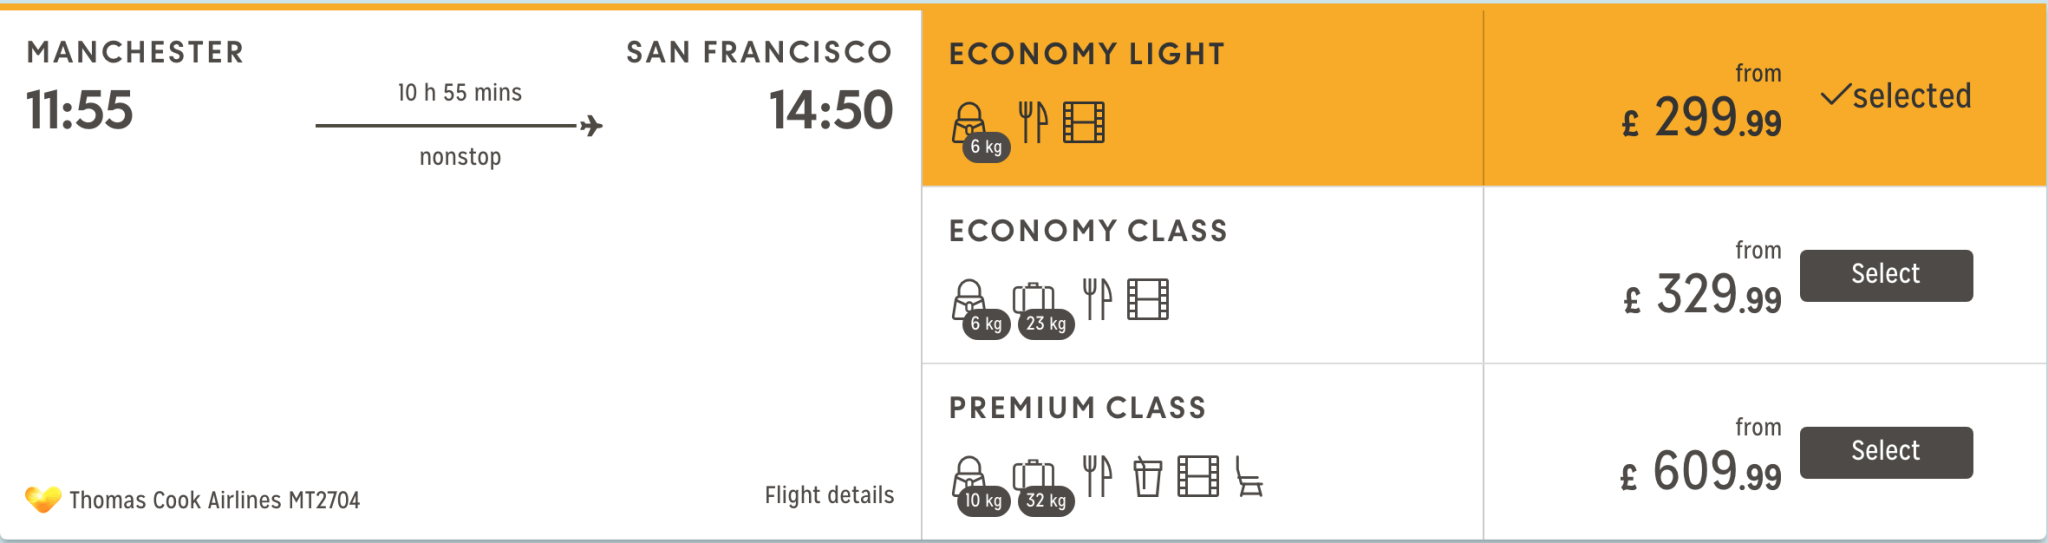 Select Economy Class to reserve a Sleeper Seat